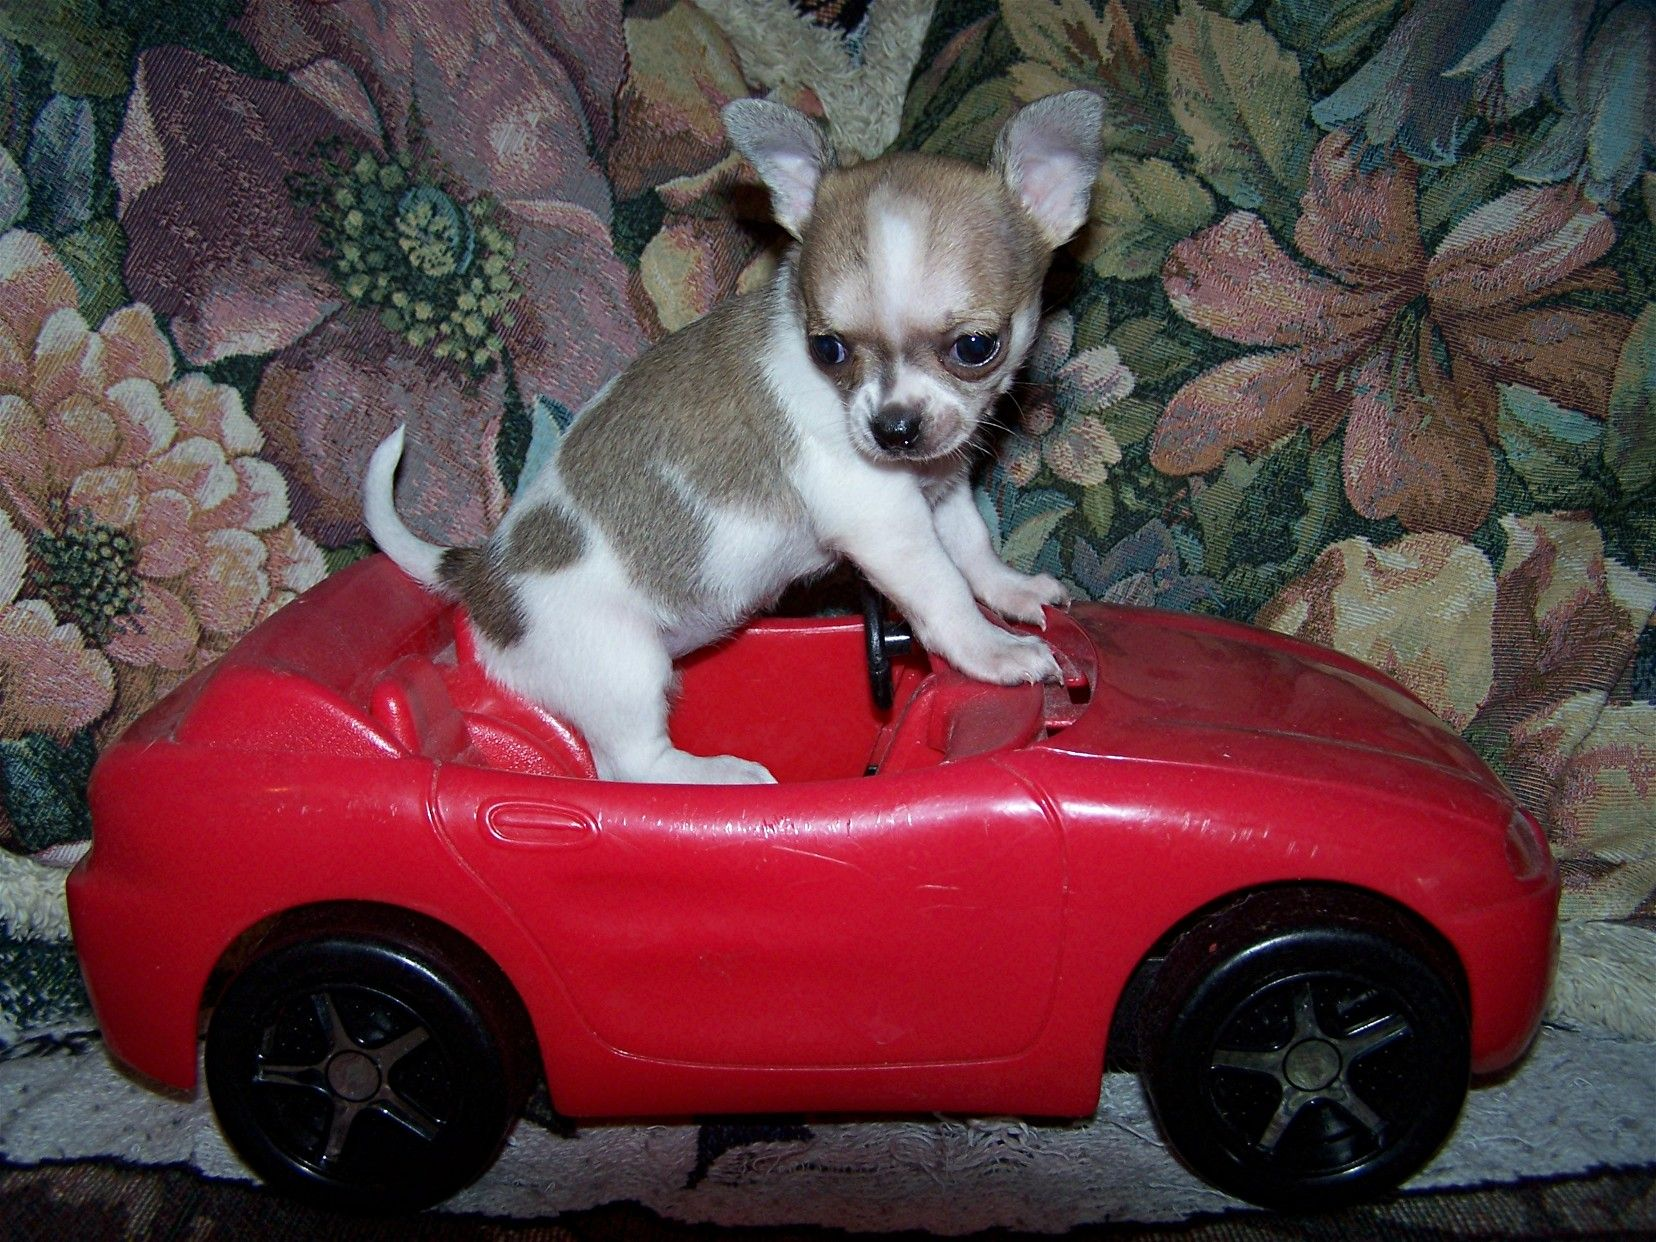 I Have Upgraded The Bus To A Corvette Cute Chihuahua